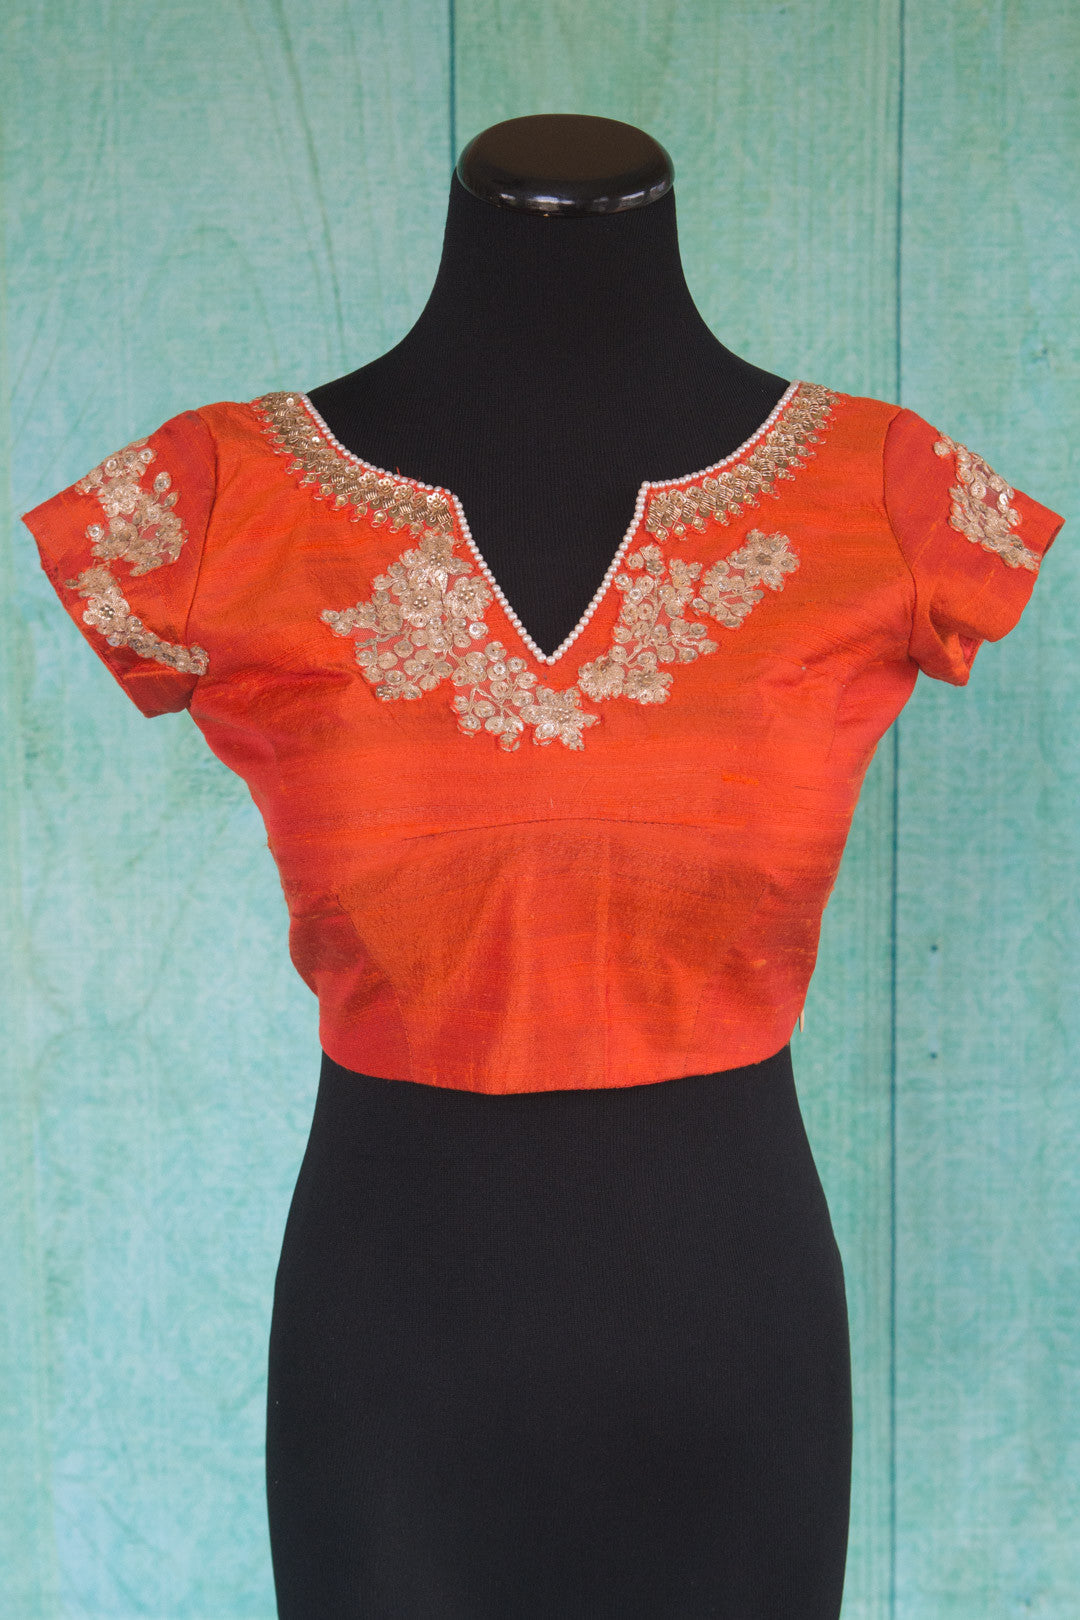 Buy this orange floral designer blouse perfect for any wedding party or reception from Pure Elegance or our store in USA. Deep neck short sleeved Bollywood fashion. Front View.